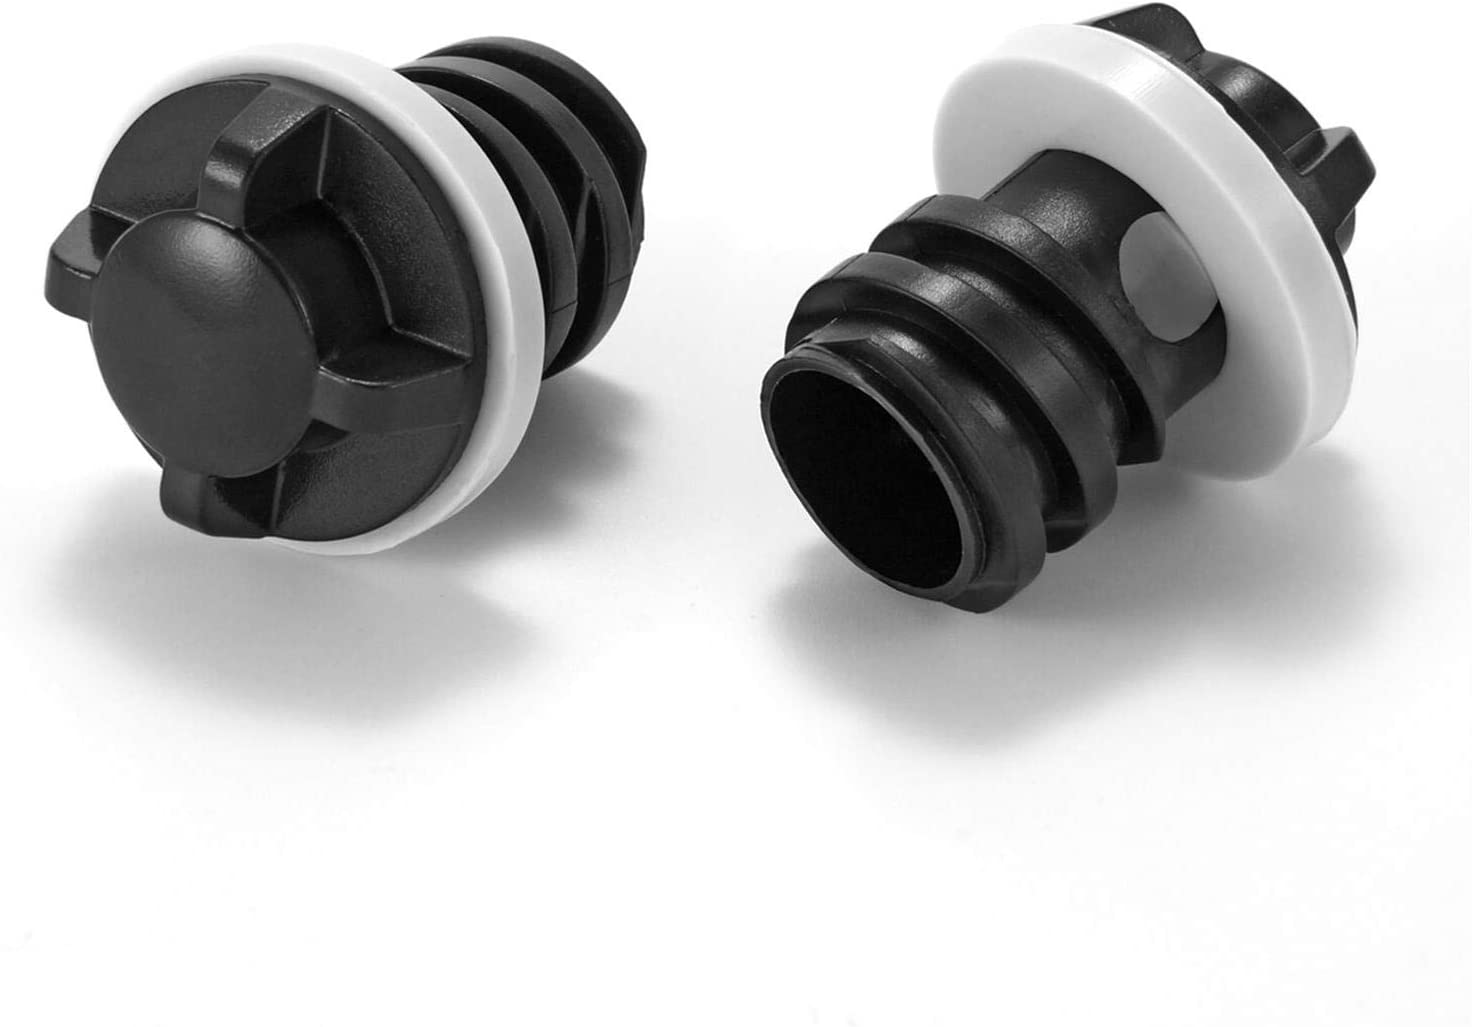 2 Pack Cooler Drain Plugs for Yetis Line of Roadie Tank Coolers and RTIC Coolers Tundra